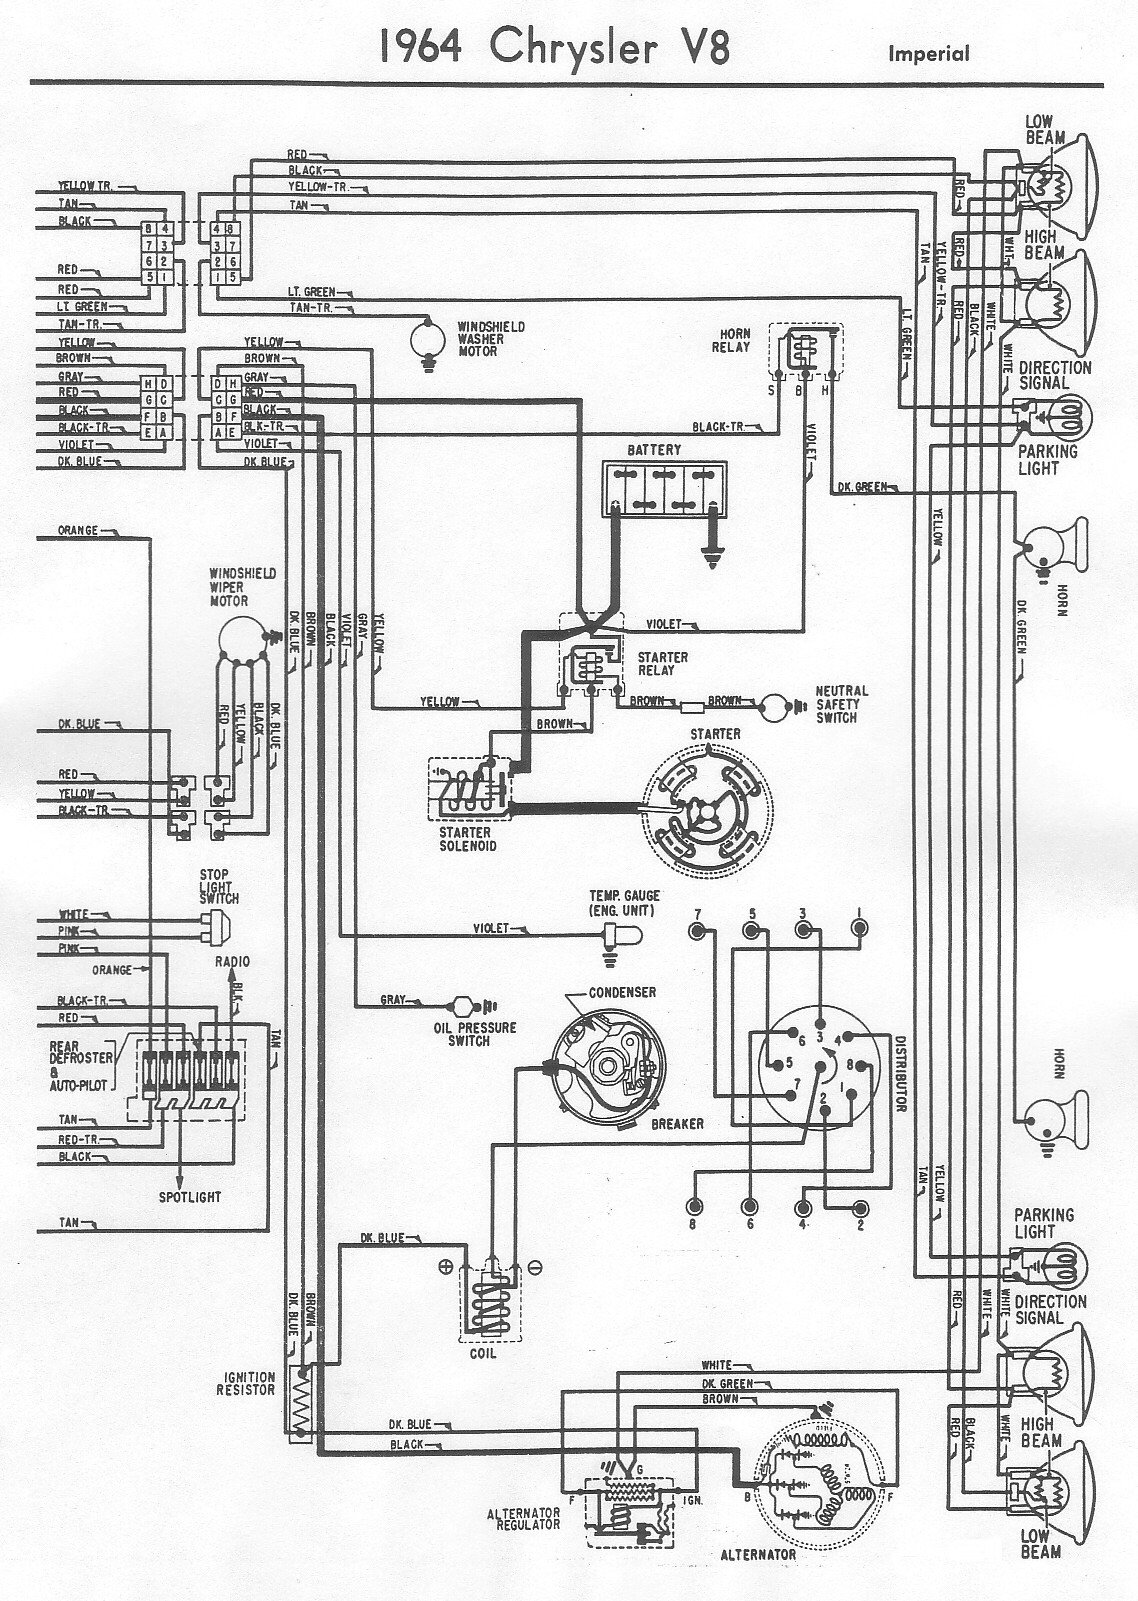 i am trying to find the schematics for wiring a 64